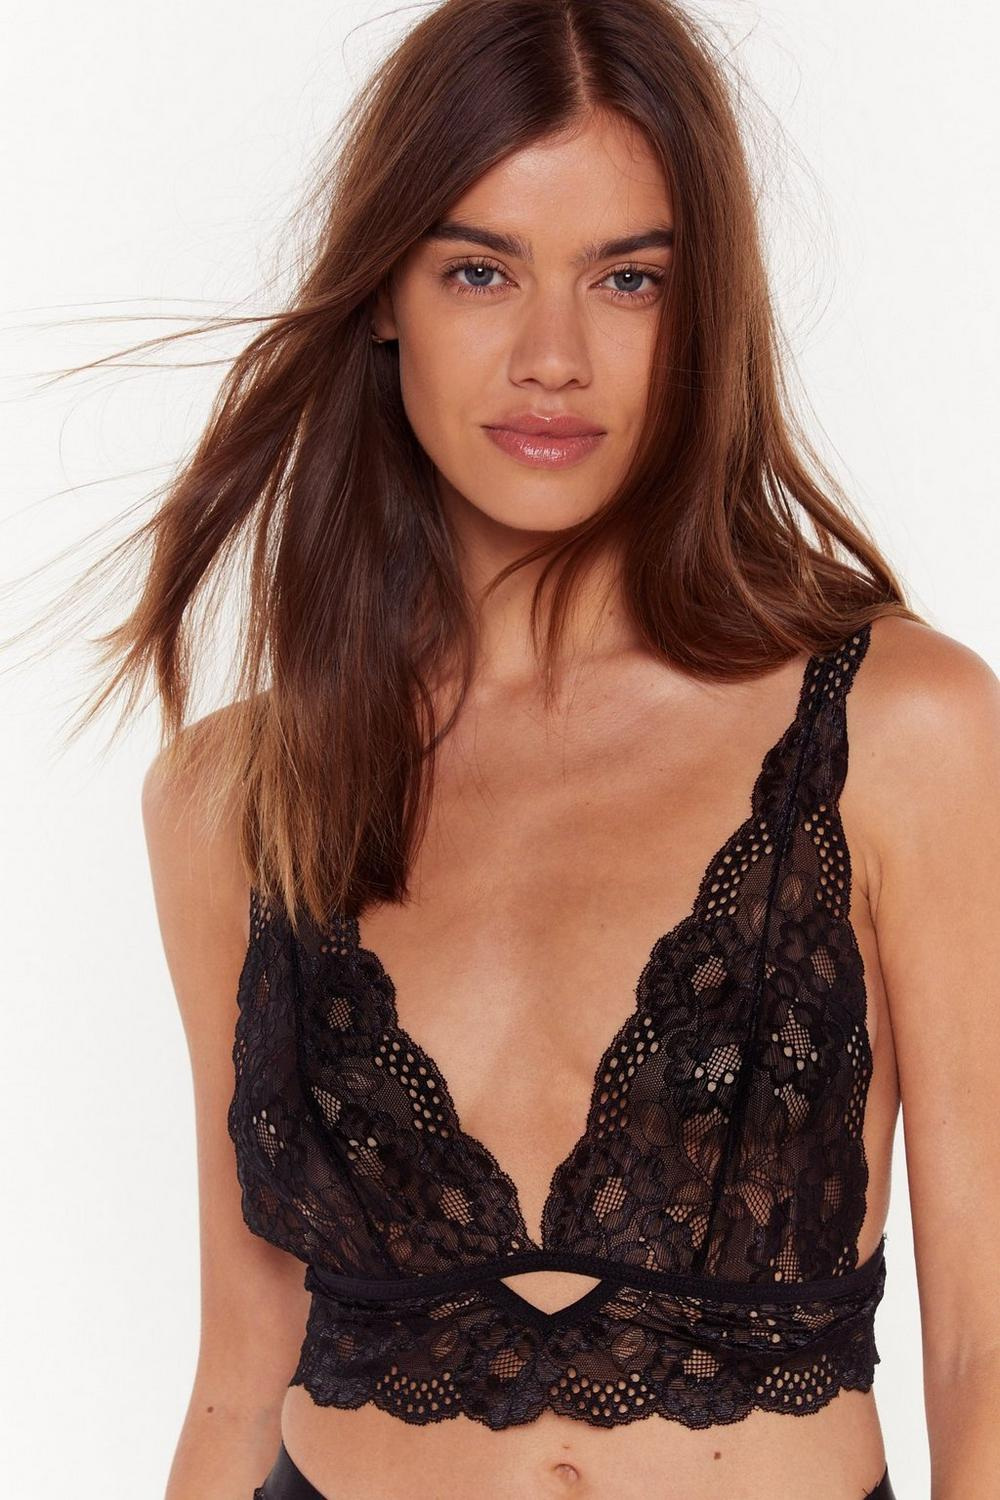 My Lace Or Yours Scalloped Bralette by Nasty Gal